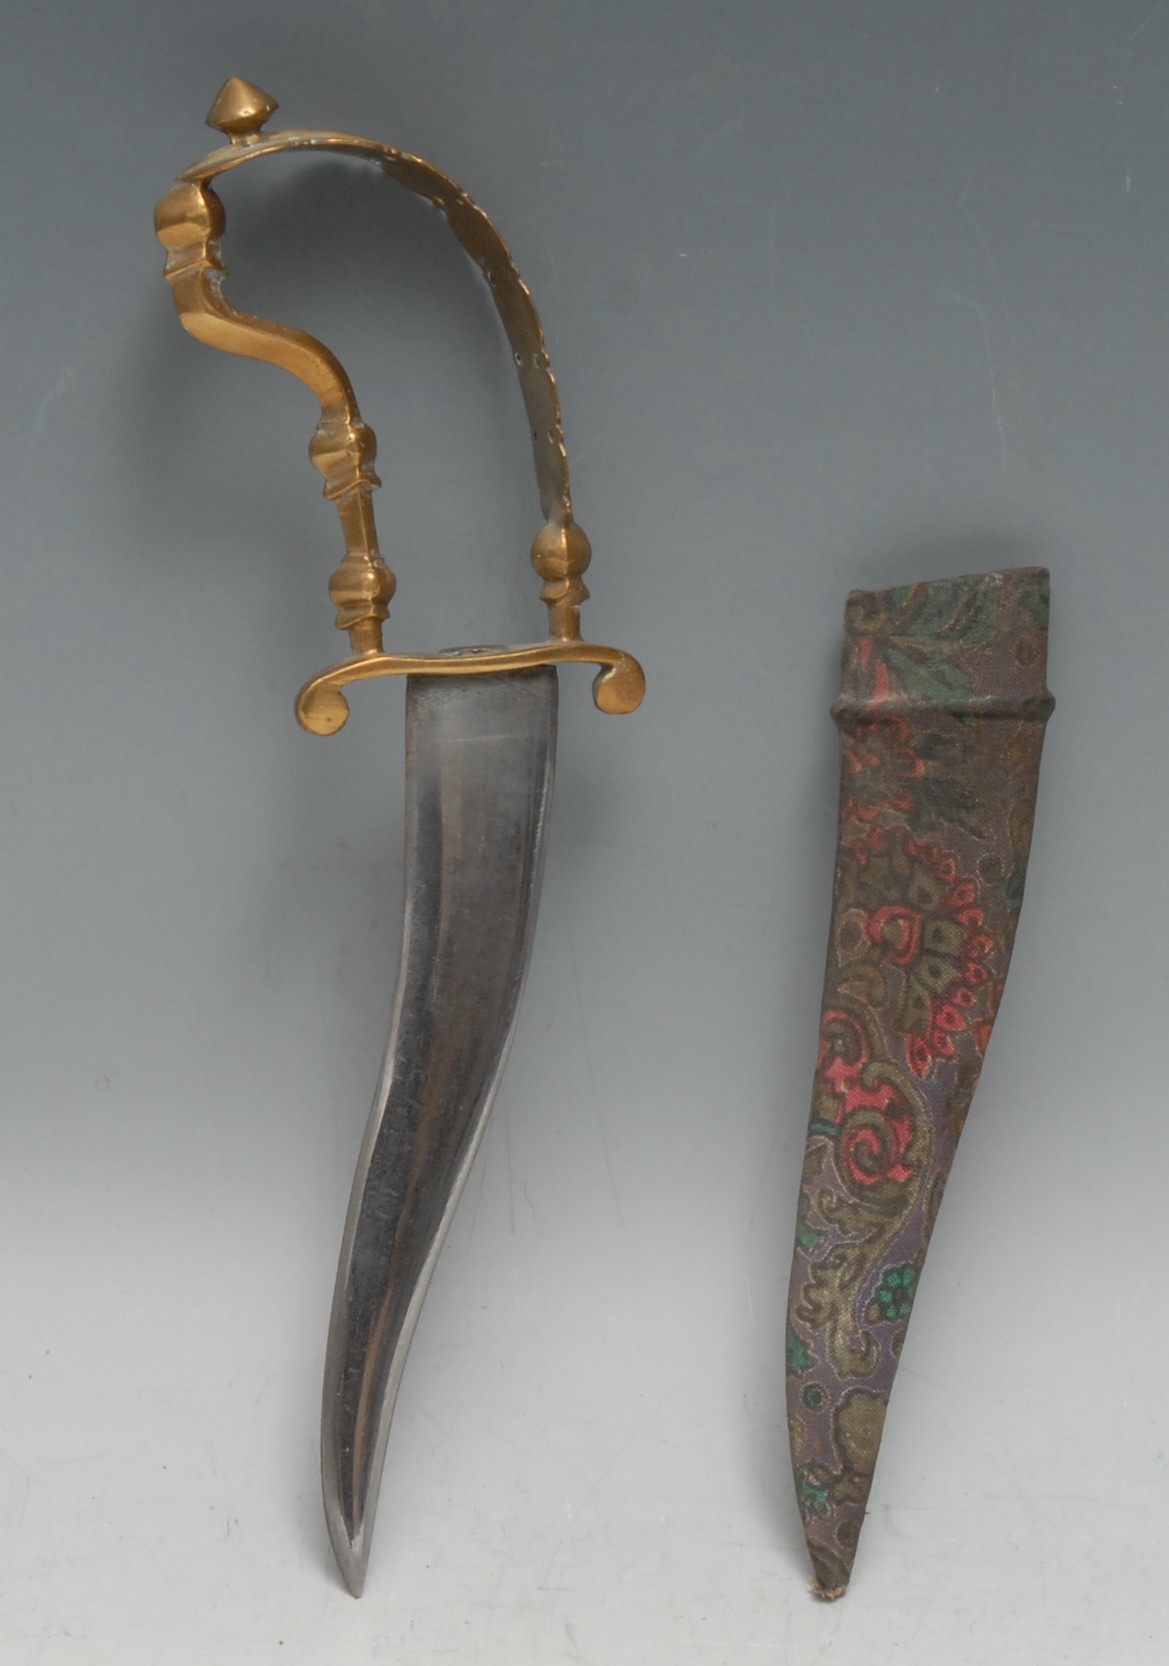 An Indian bichuwa, 14.5cm curved blade, gilt brass knuckle-bow hilt, 23cm long overall, 19th century